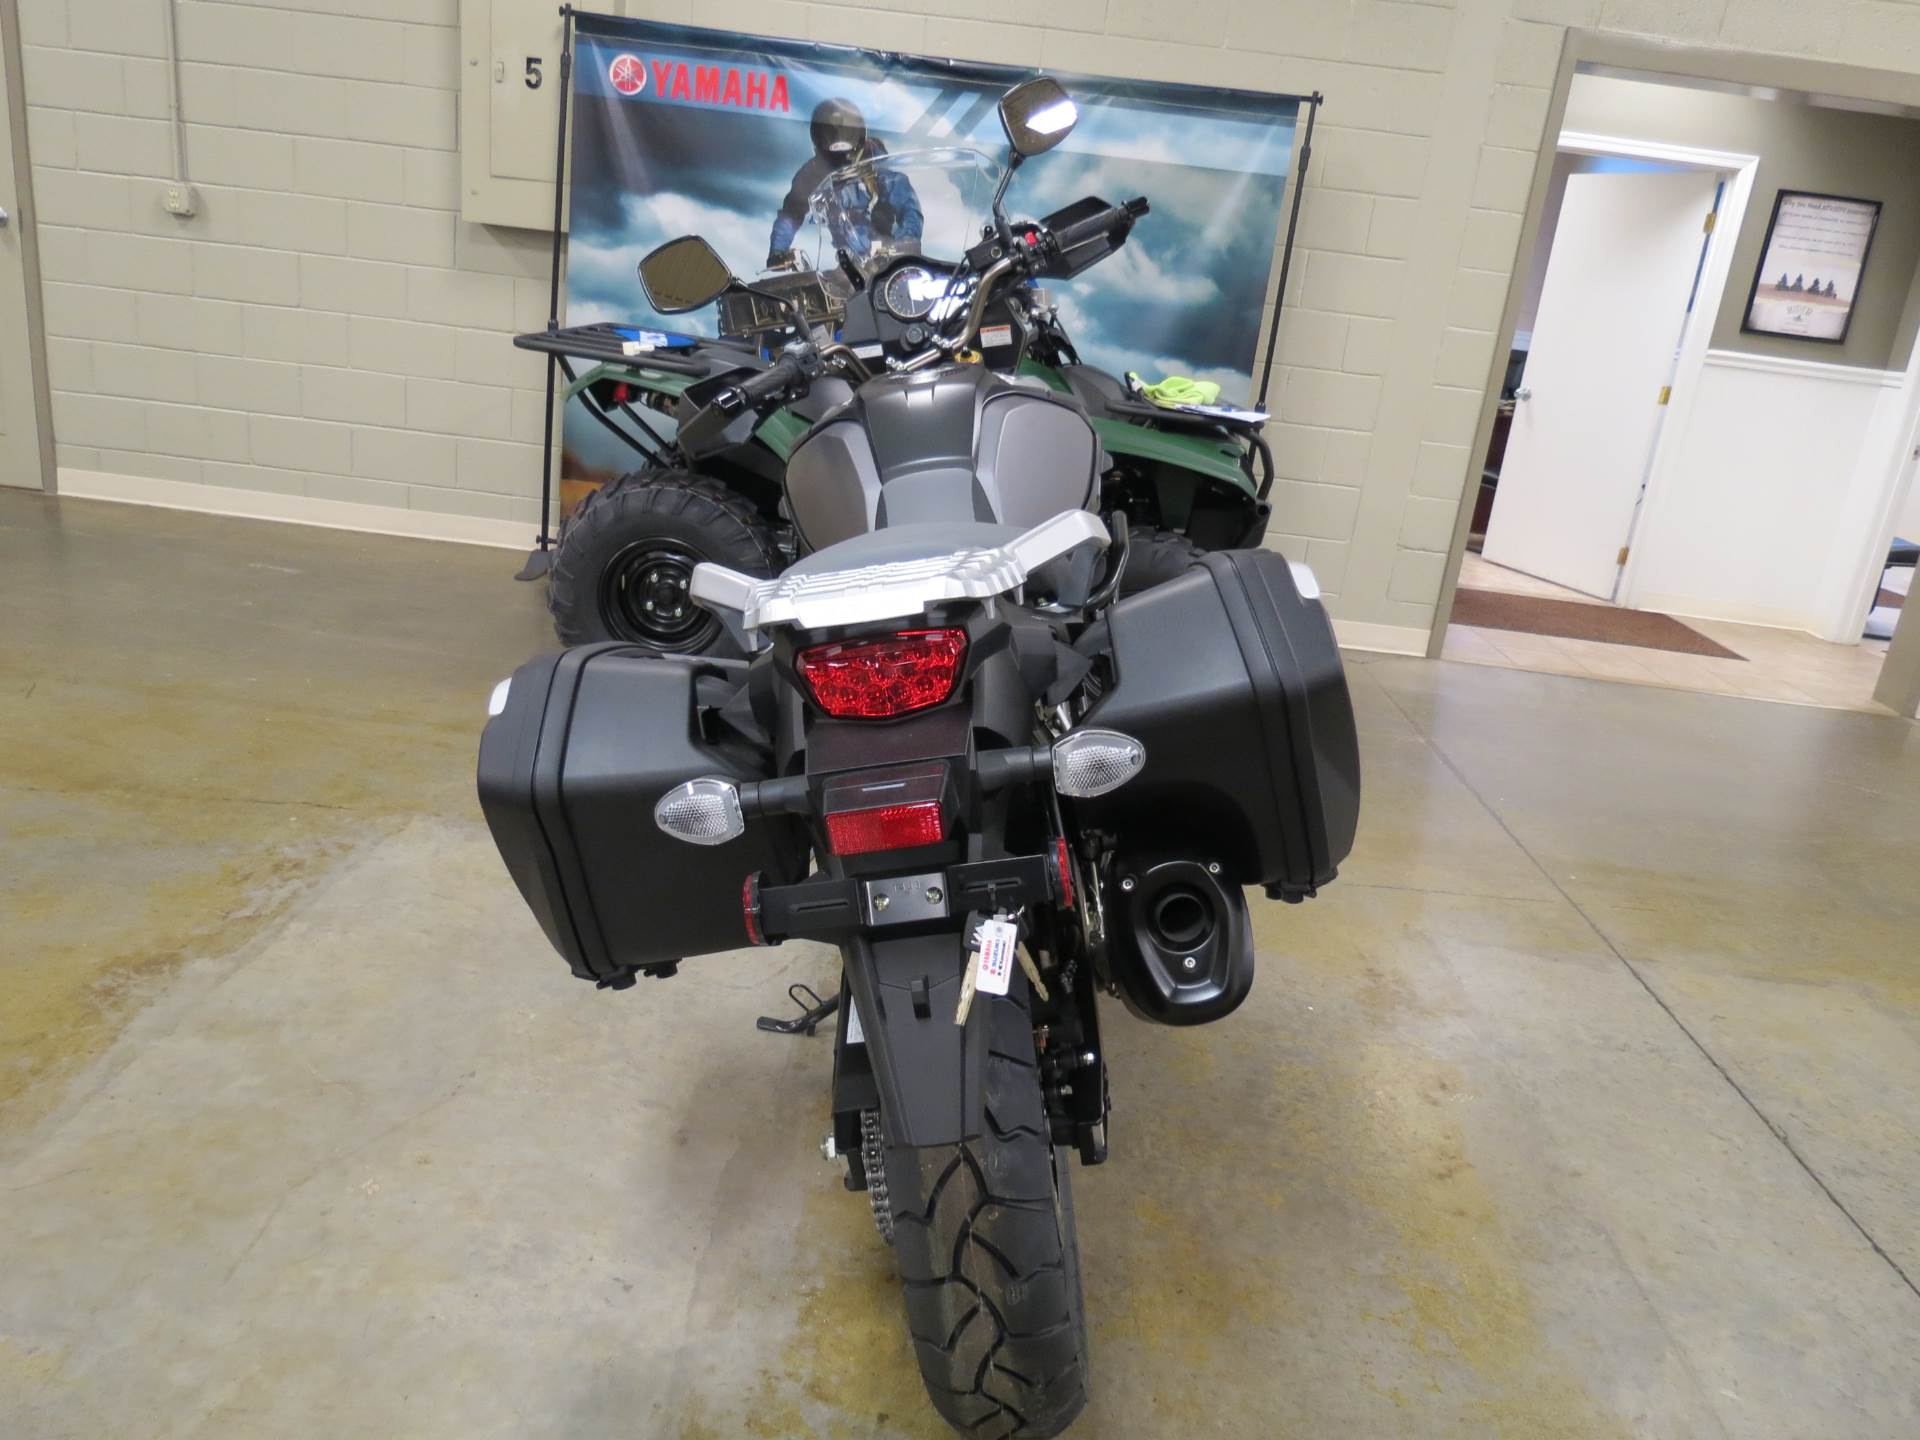 2016 Suzuki V-Strom 1000 ABS Adventure in Romney, West Virginia